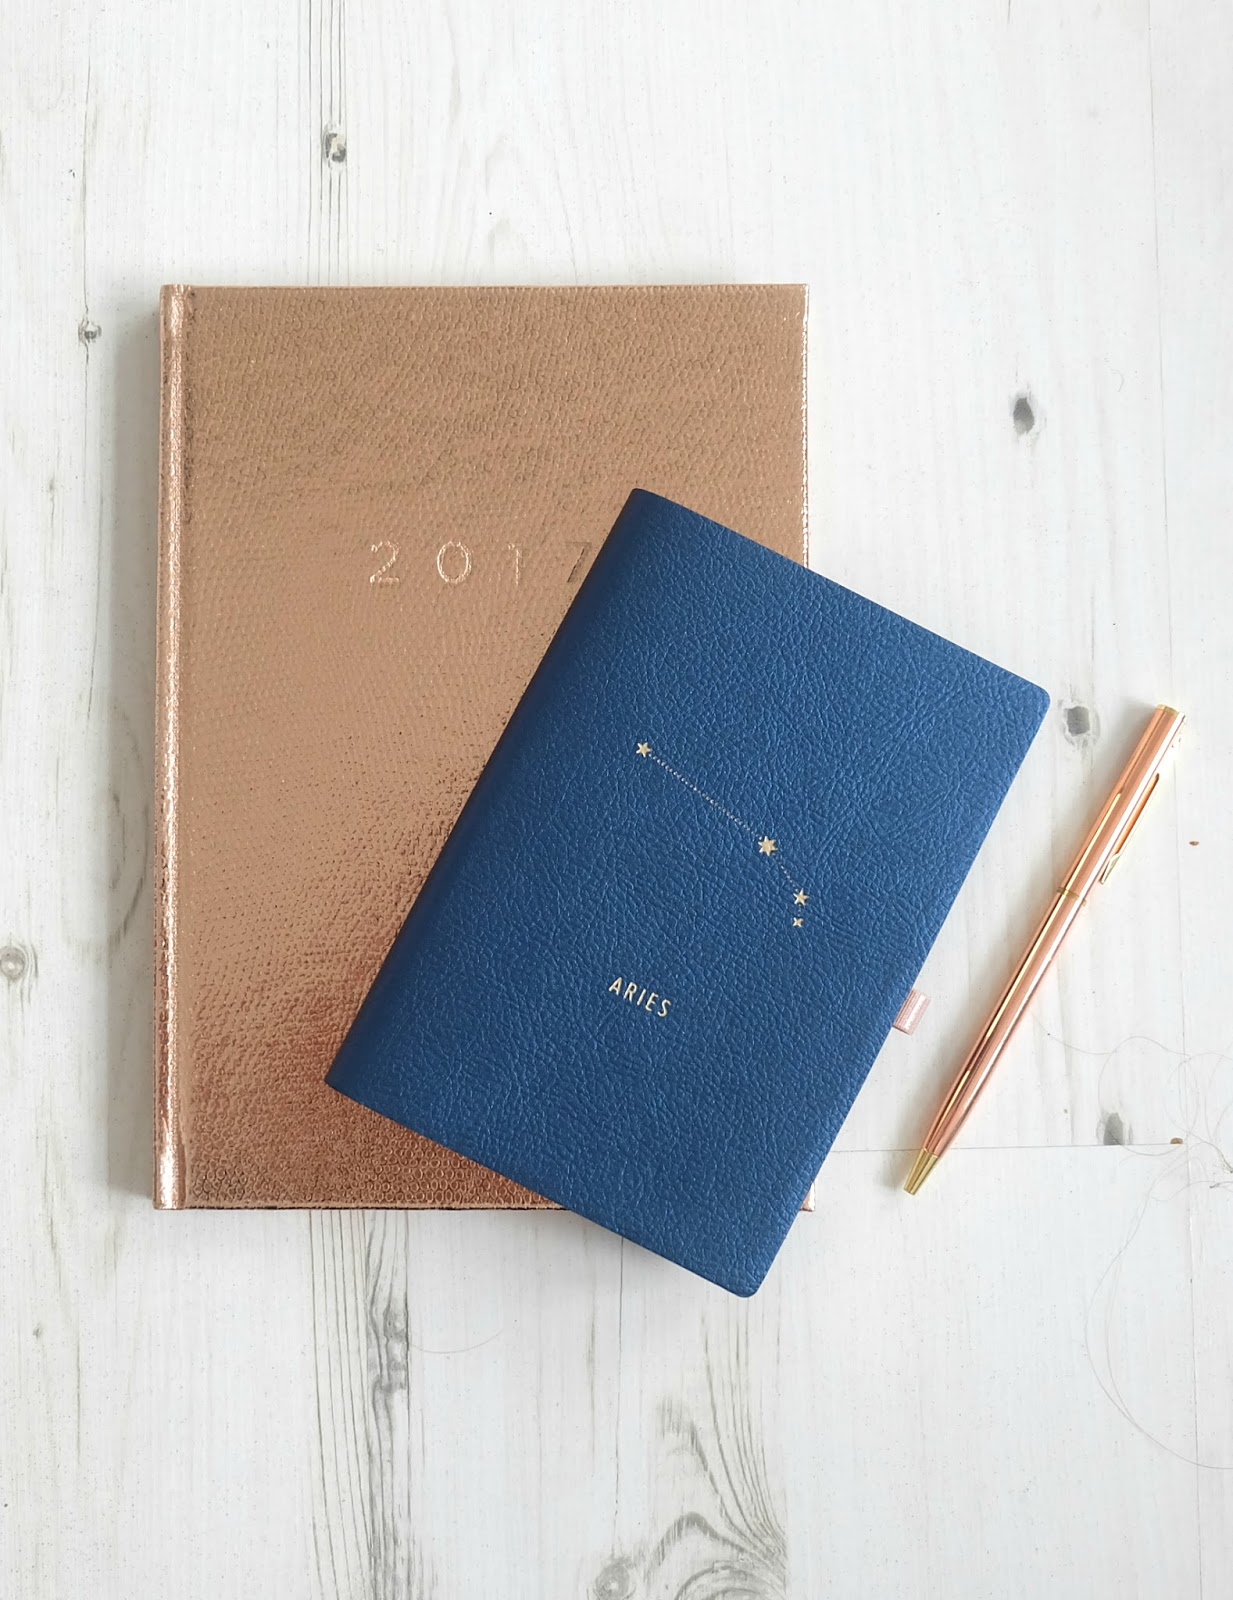 anthropologies aries notebook